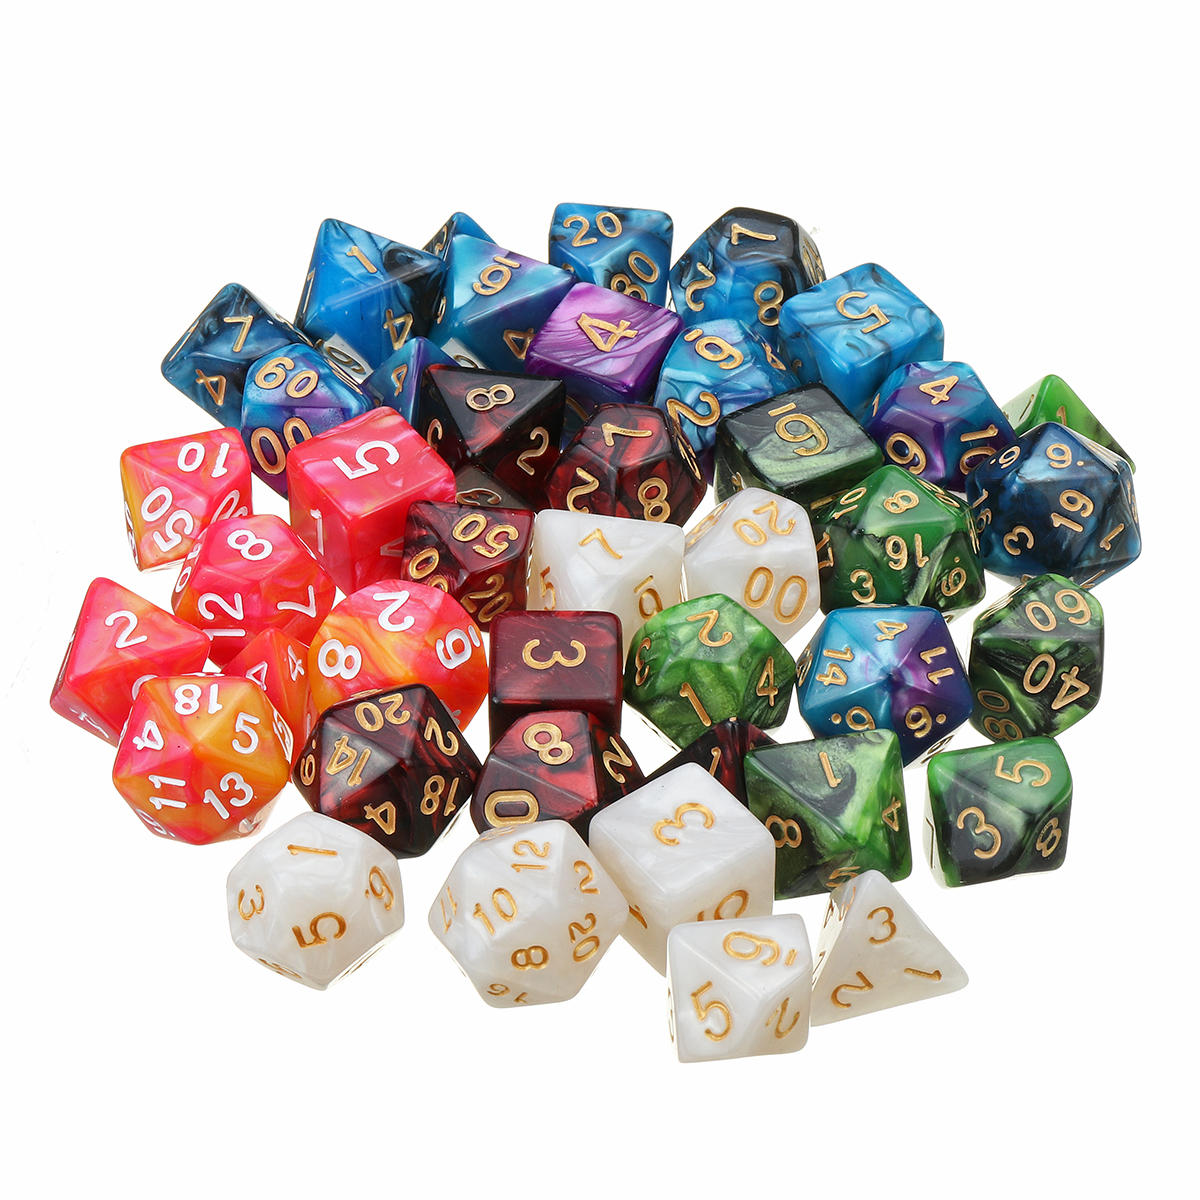 42Pcs 6 Set Polyhedral Dice with Bag For DND RPG MTG Role Playing Board Game